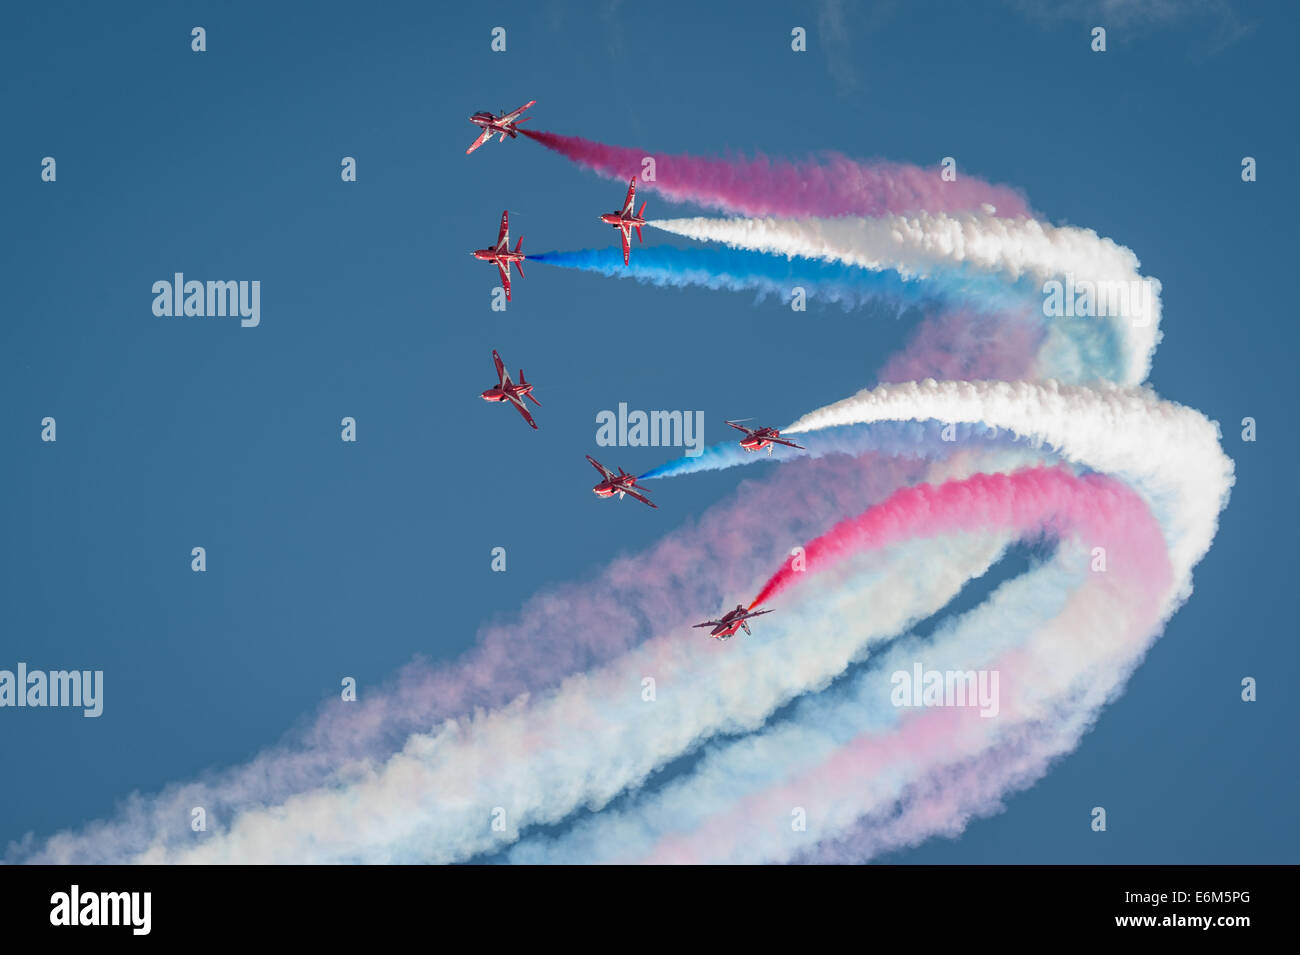 The Royal Air Force display team the Red Arrows, Dawlish Air Show Aug 23, 2014. - Stock Image